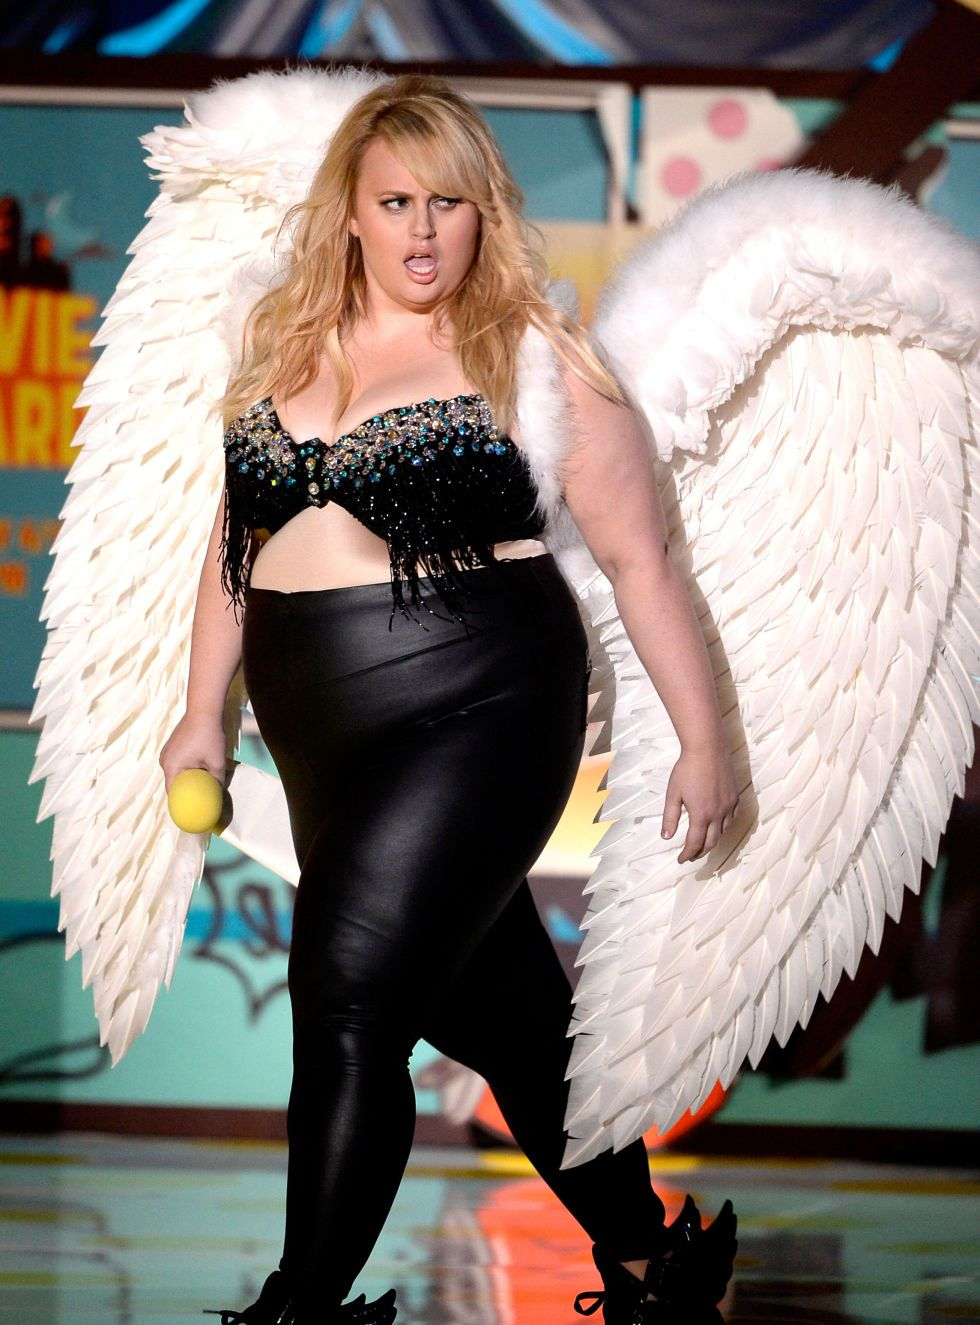 Rebel Wilson explains the thought behind her Victoria's Secret statement at the MTV Movie Awards.